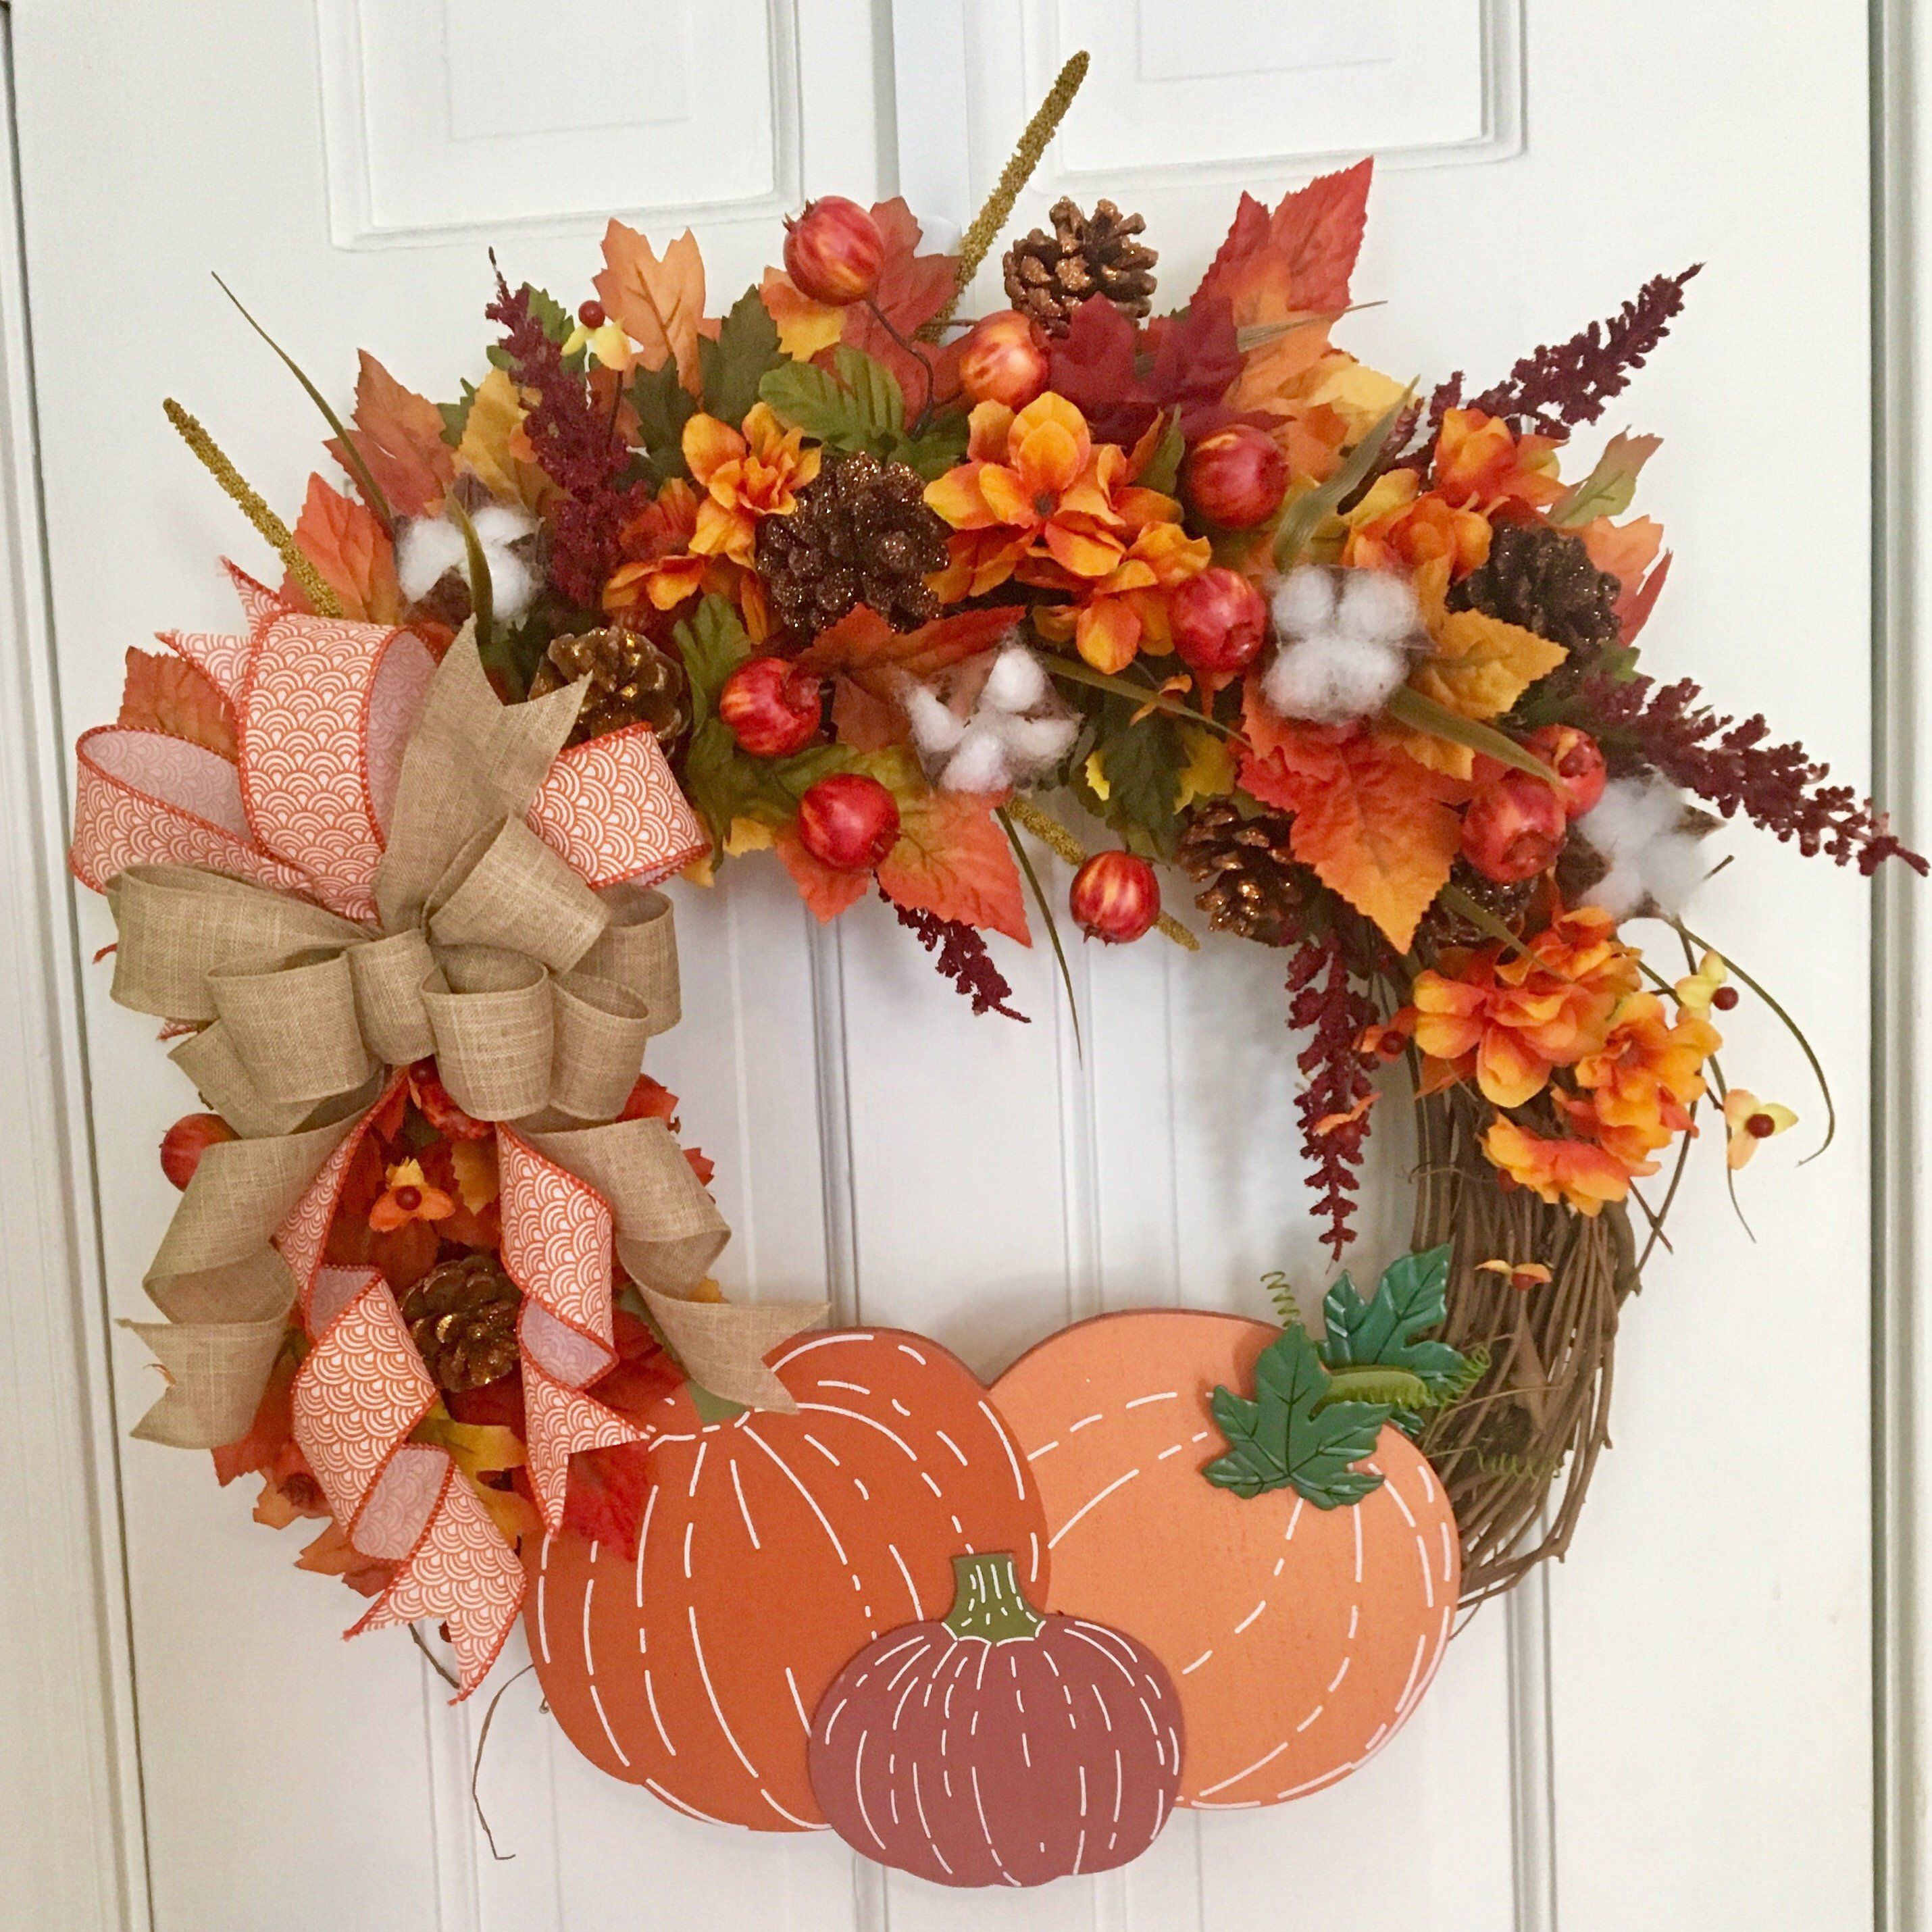 Pin by Connie Bacon on Fun etsy finds Fall wreaths, Diy